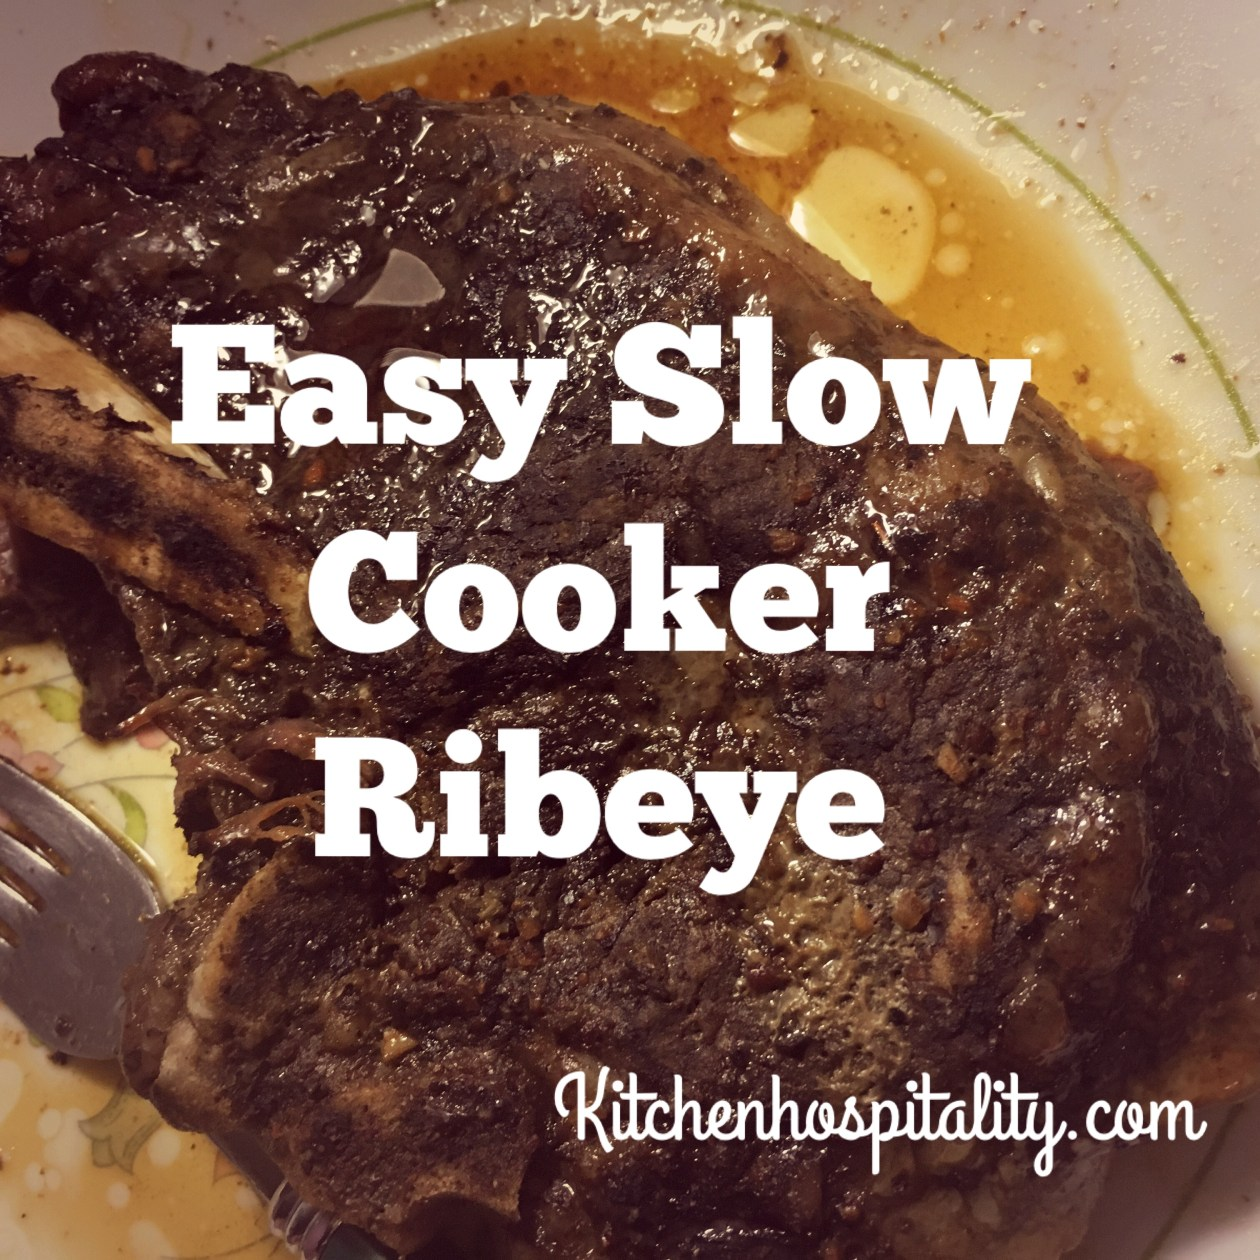 Slow cooker ribeye